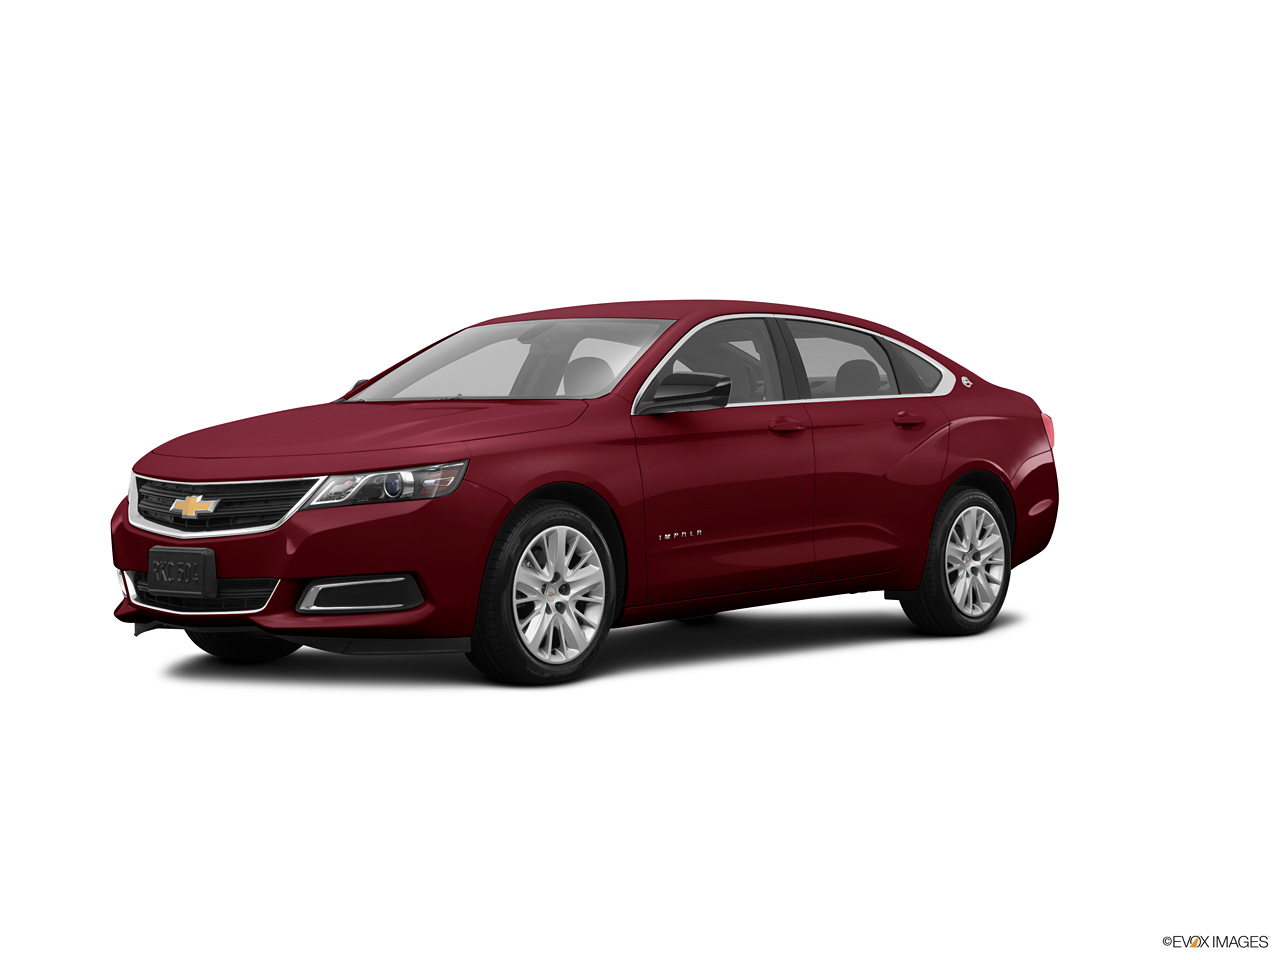 Chevy Dealers In Ma >> Car Pictures List for Chevrolet Impala 2017 3.6L LTZ (UAE ...